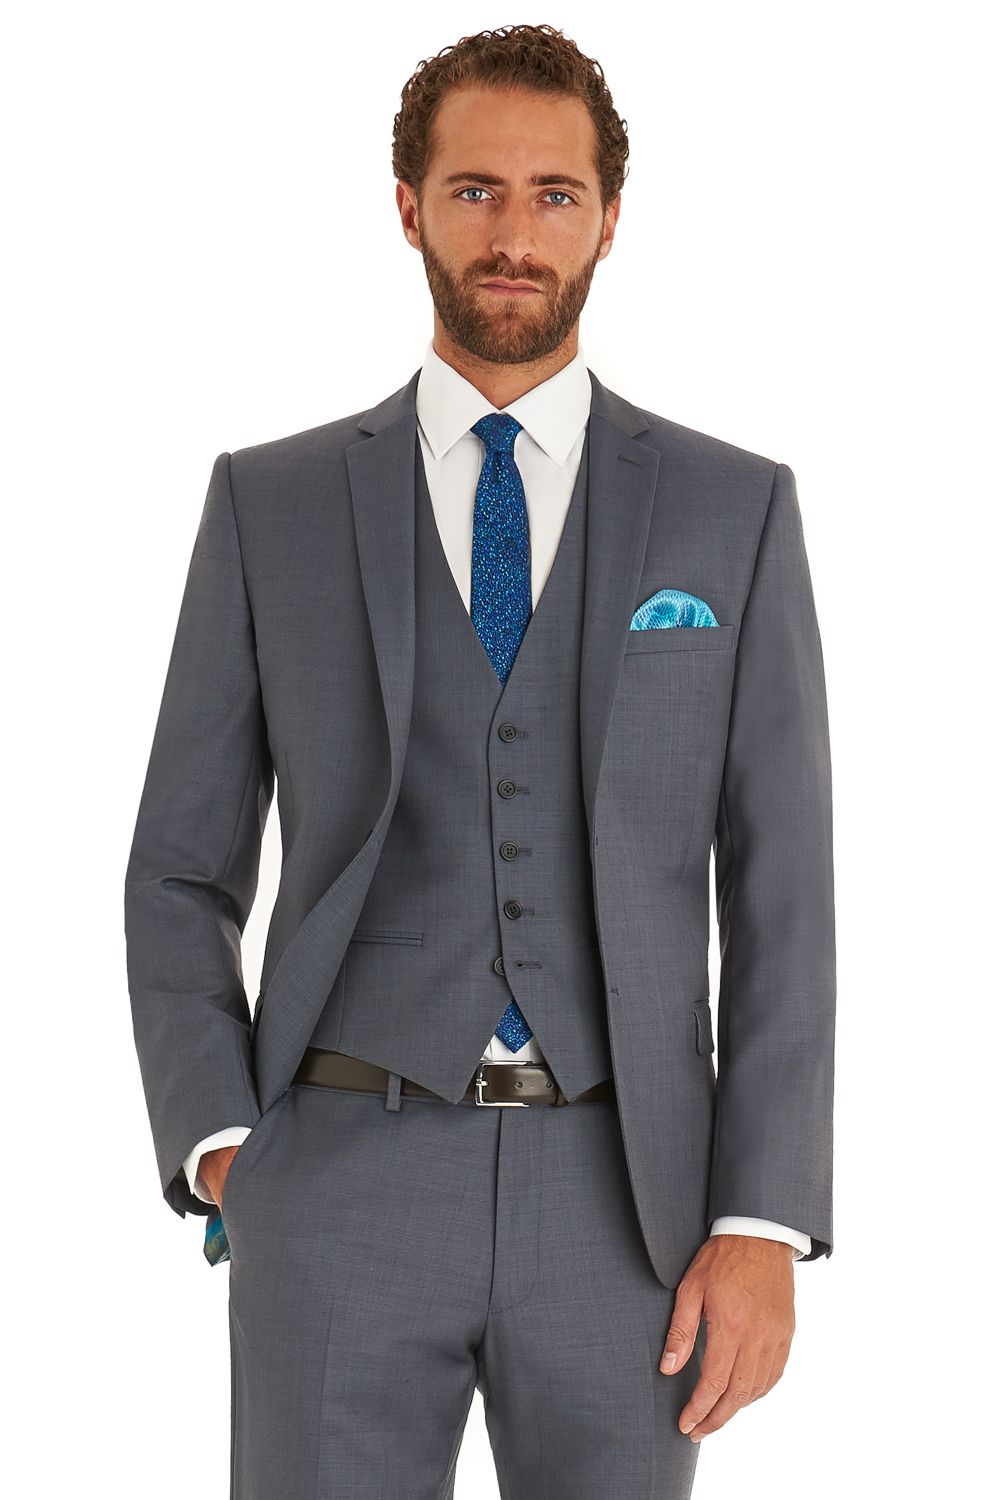 e6090797c9d6f9 This steel grey Ted Baker Endurance mixer suit Jacket is single breasted  with a notch lapel. It has a two button fastening